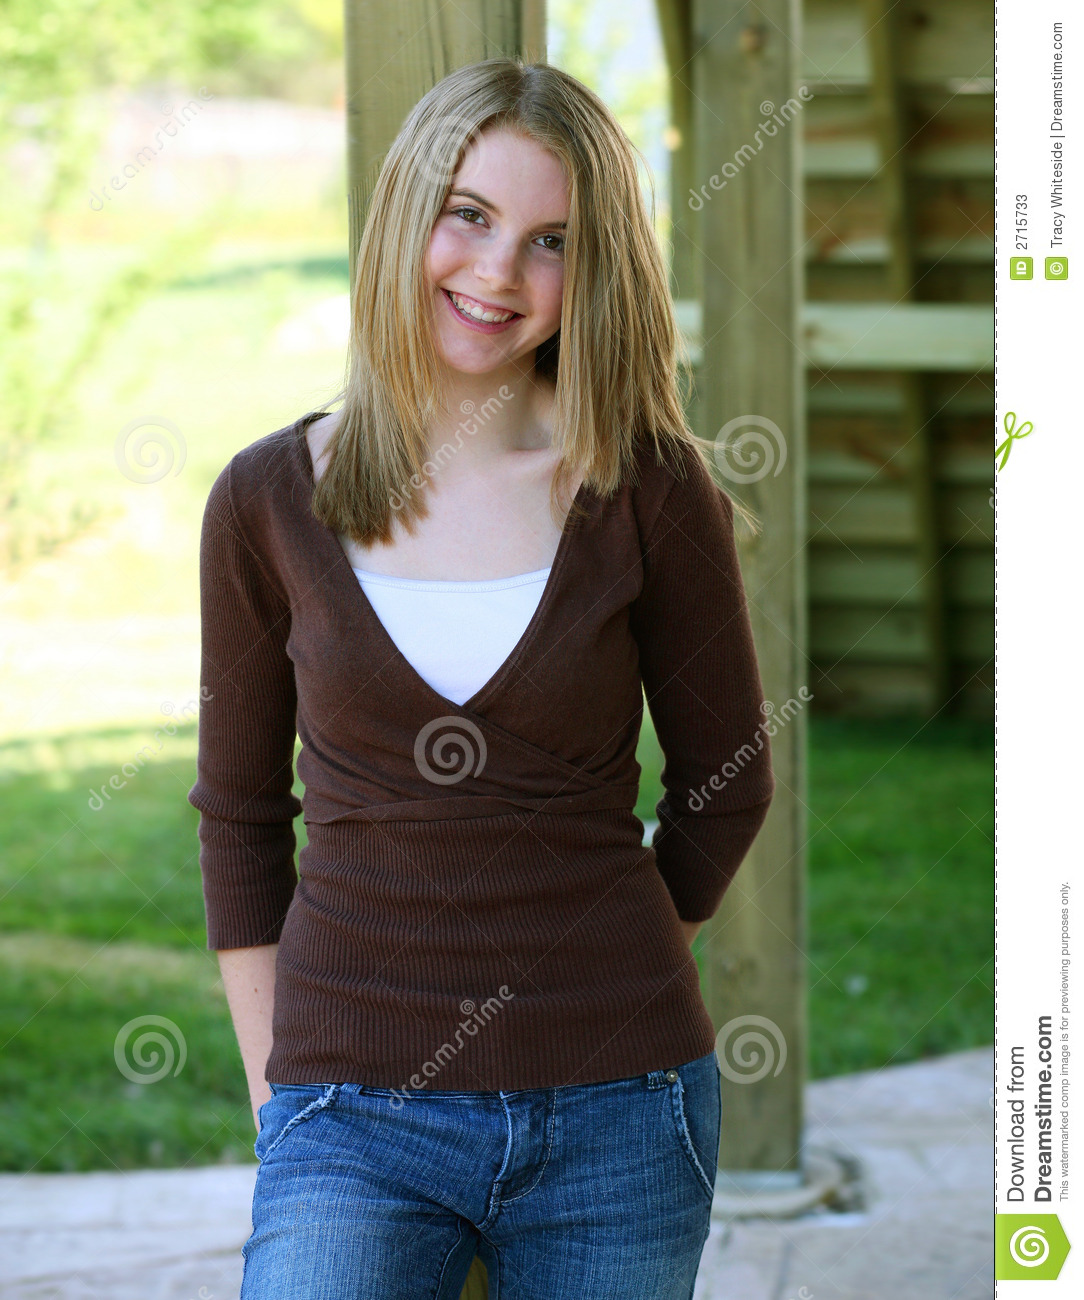 70 pretty blonde american teen